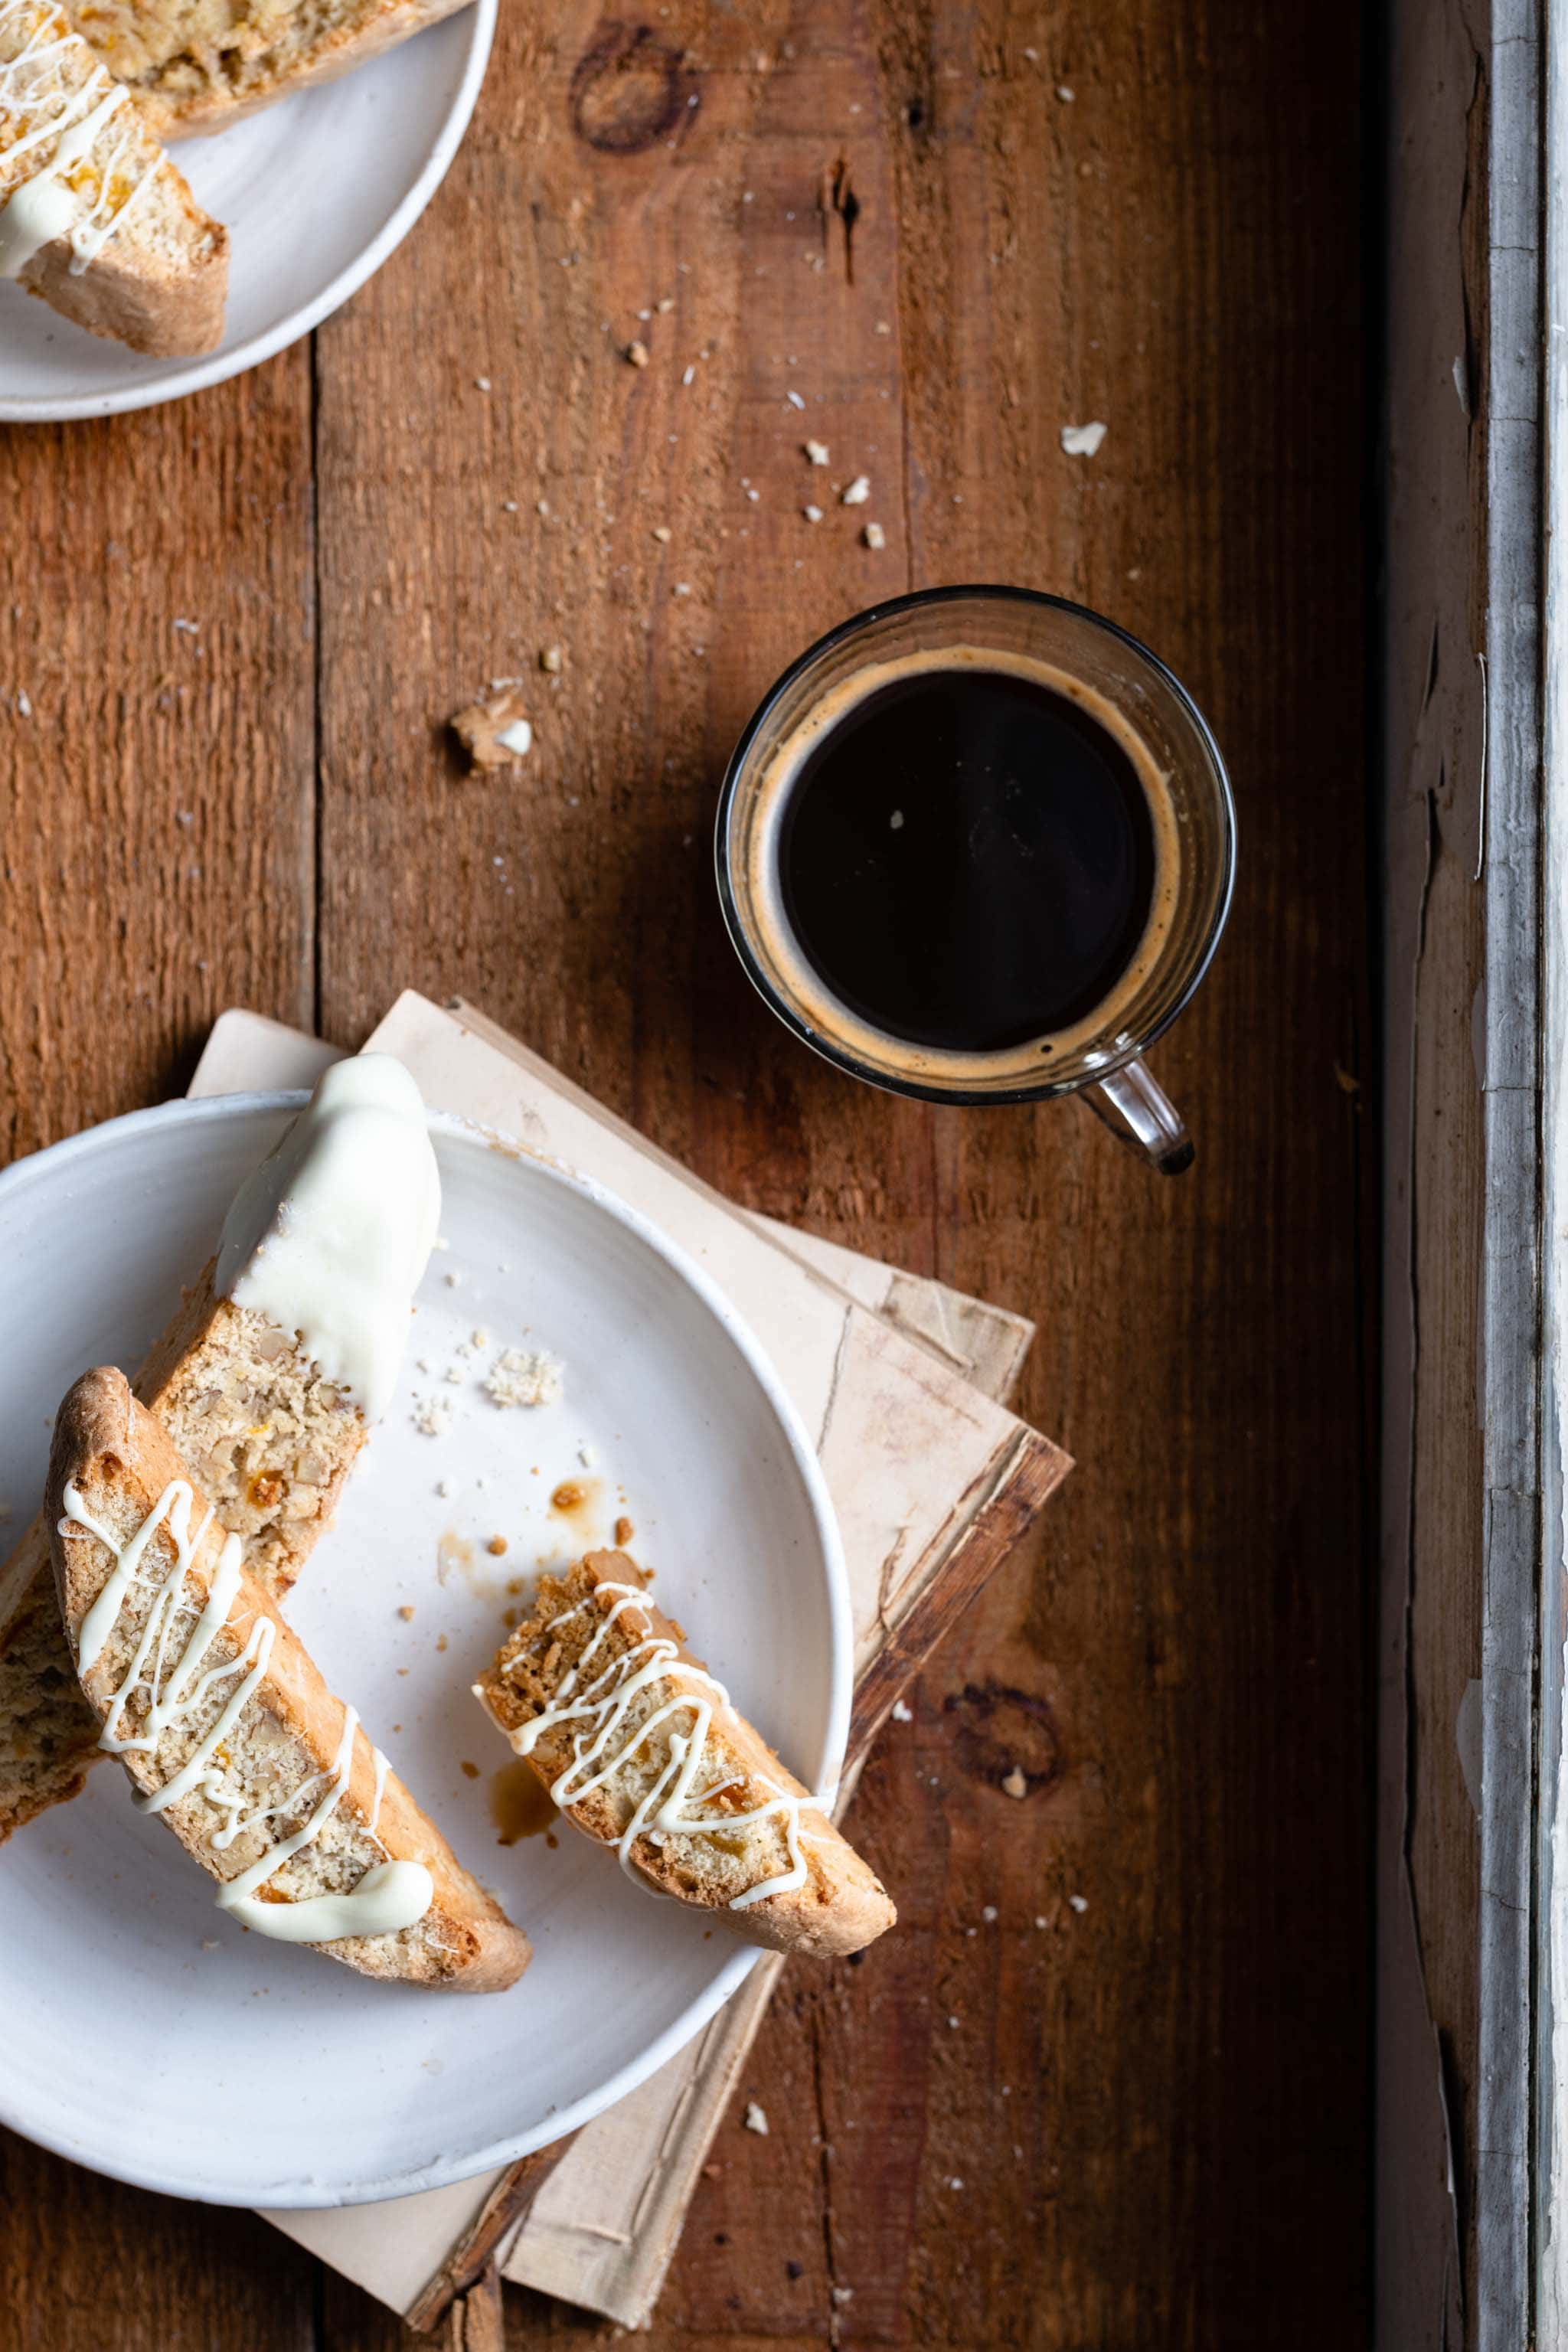 apricot walnut biscotti with white chocolate drizzle and coffee